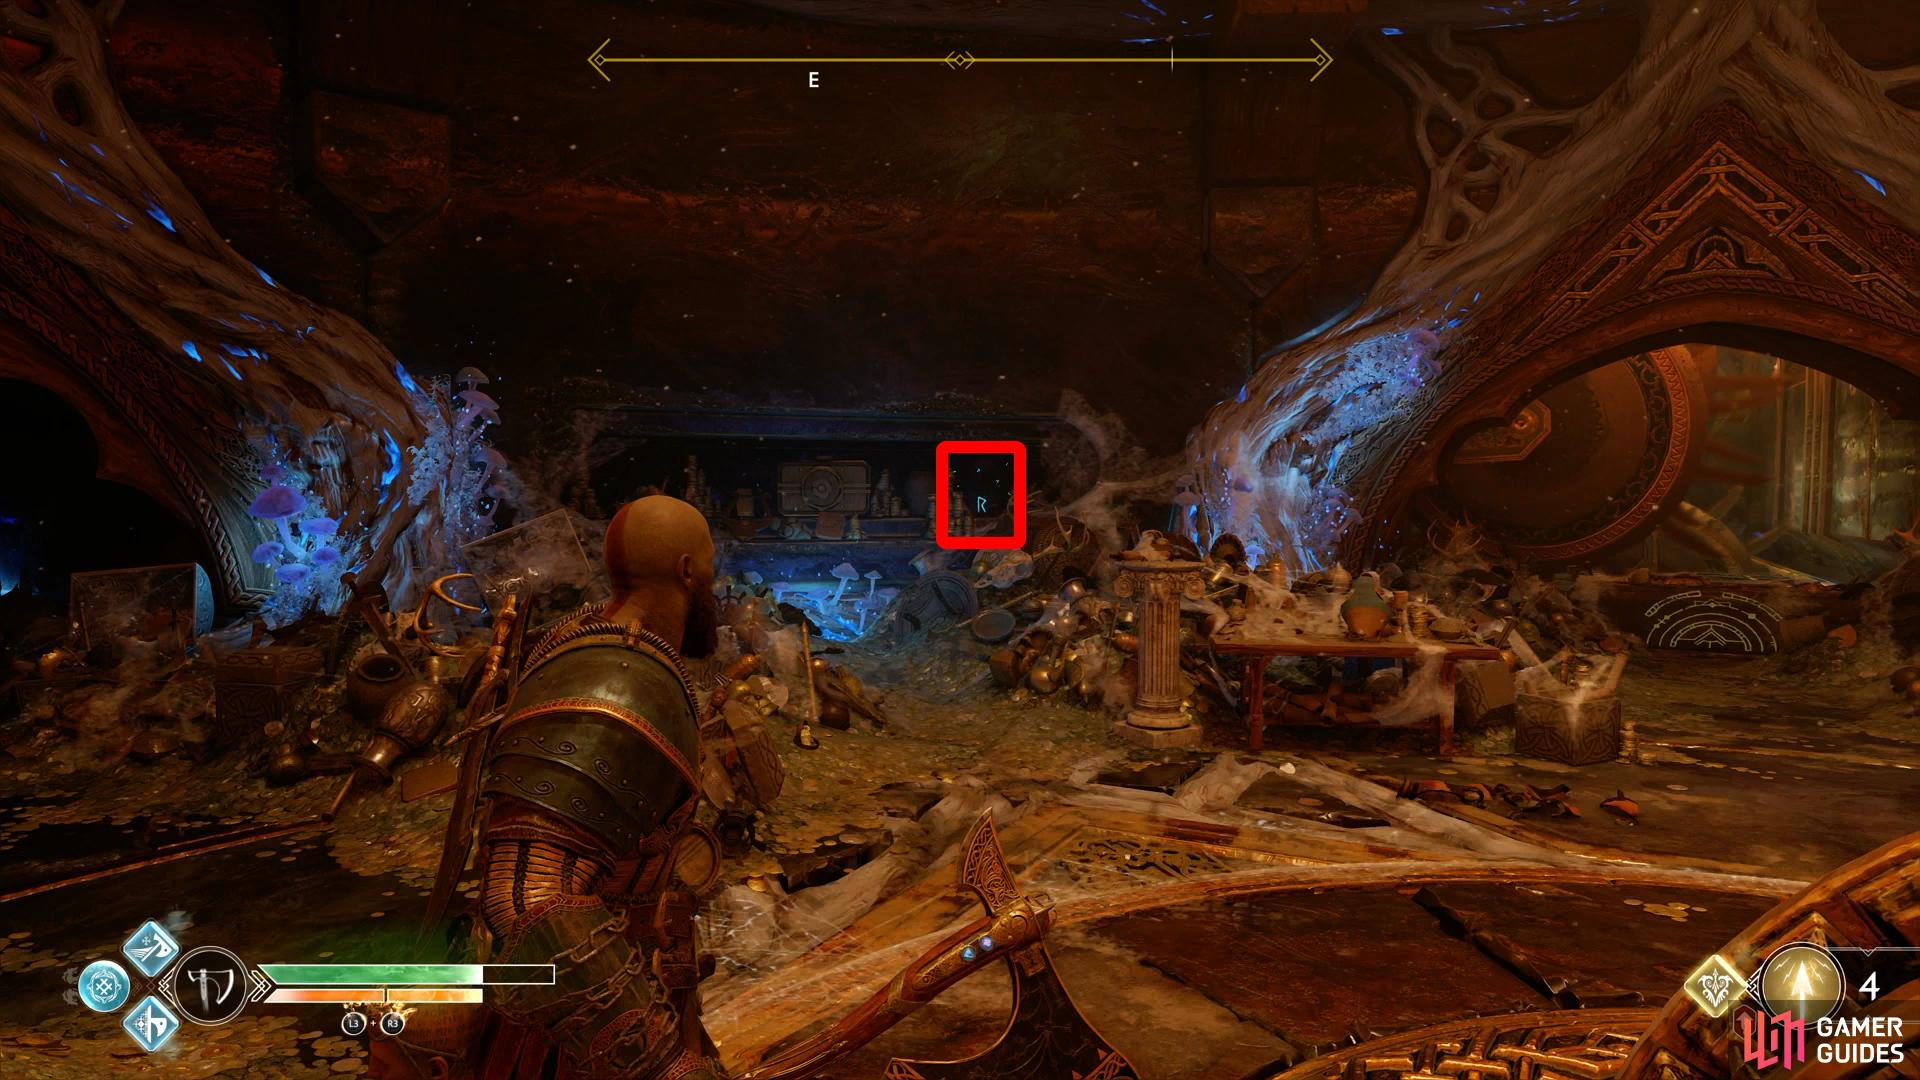 check the shelf to the left of the wheel to find the first Rune.